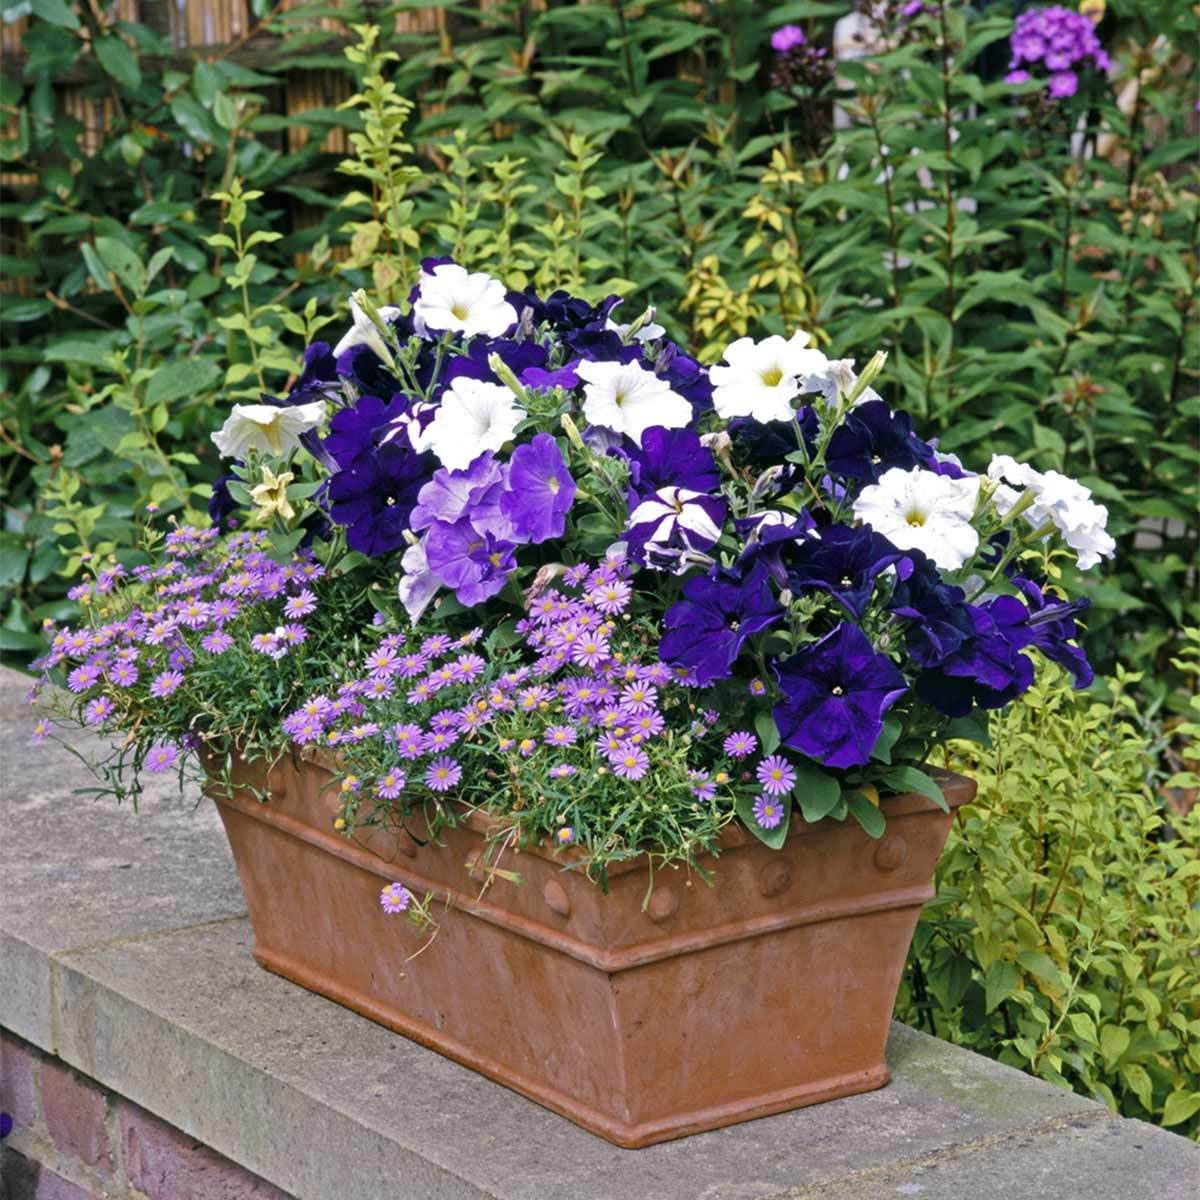 Petunias with Asters